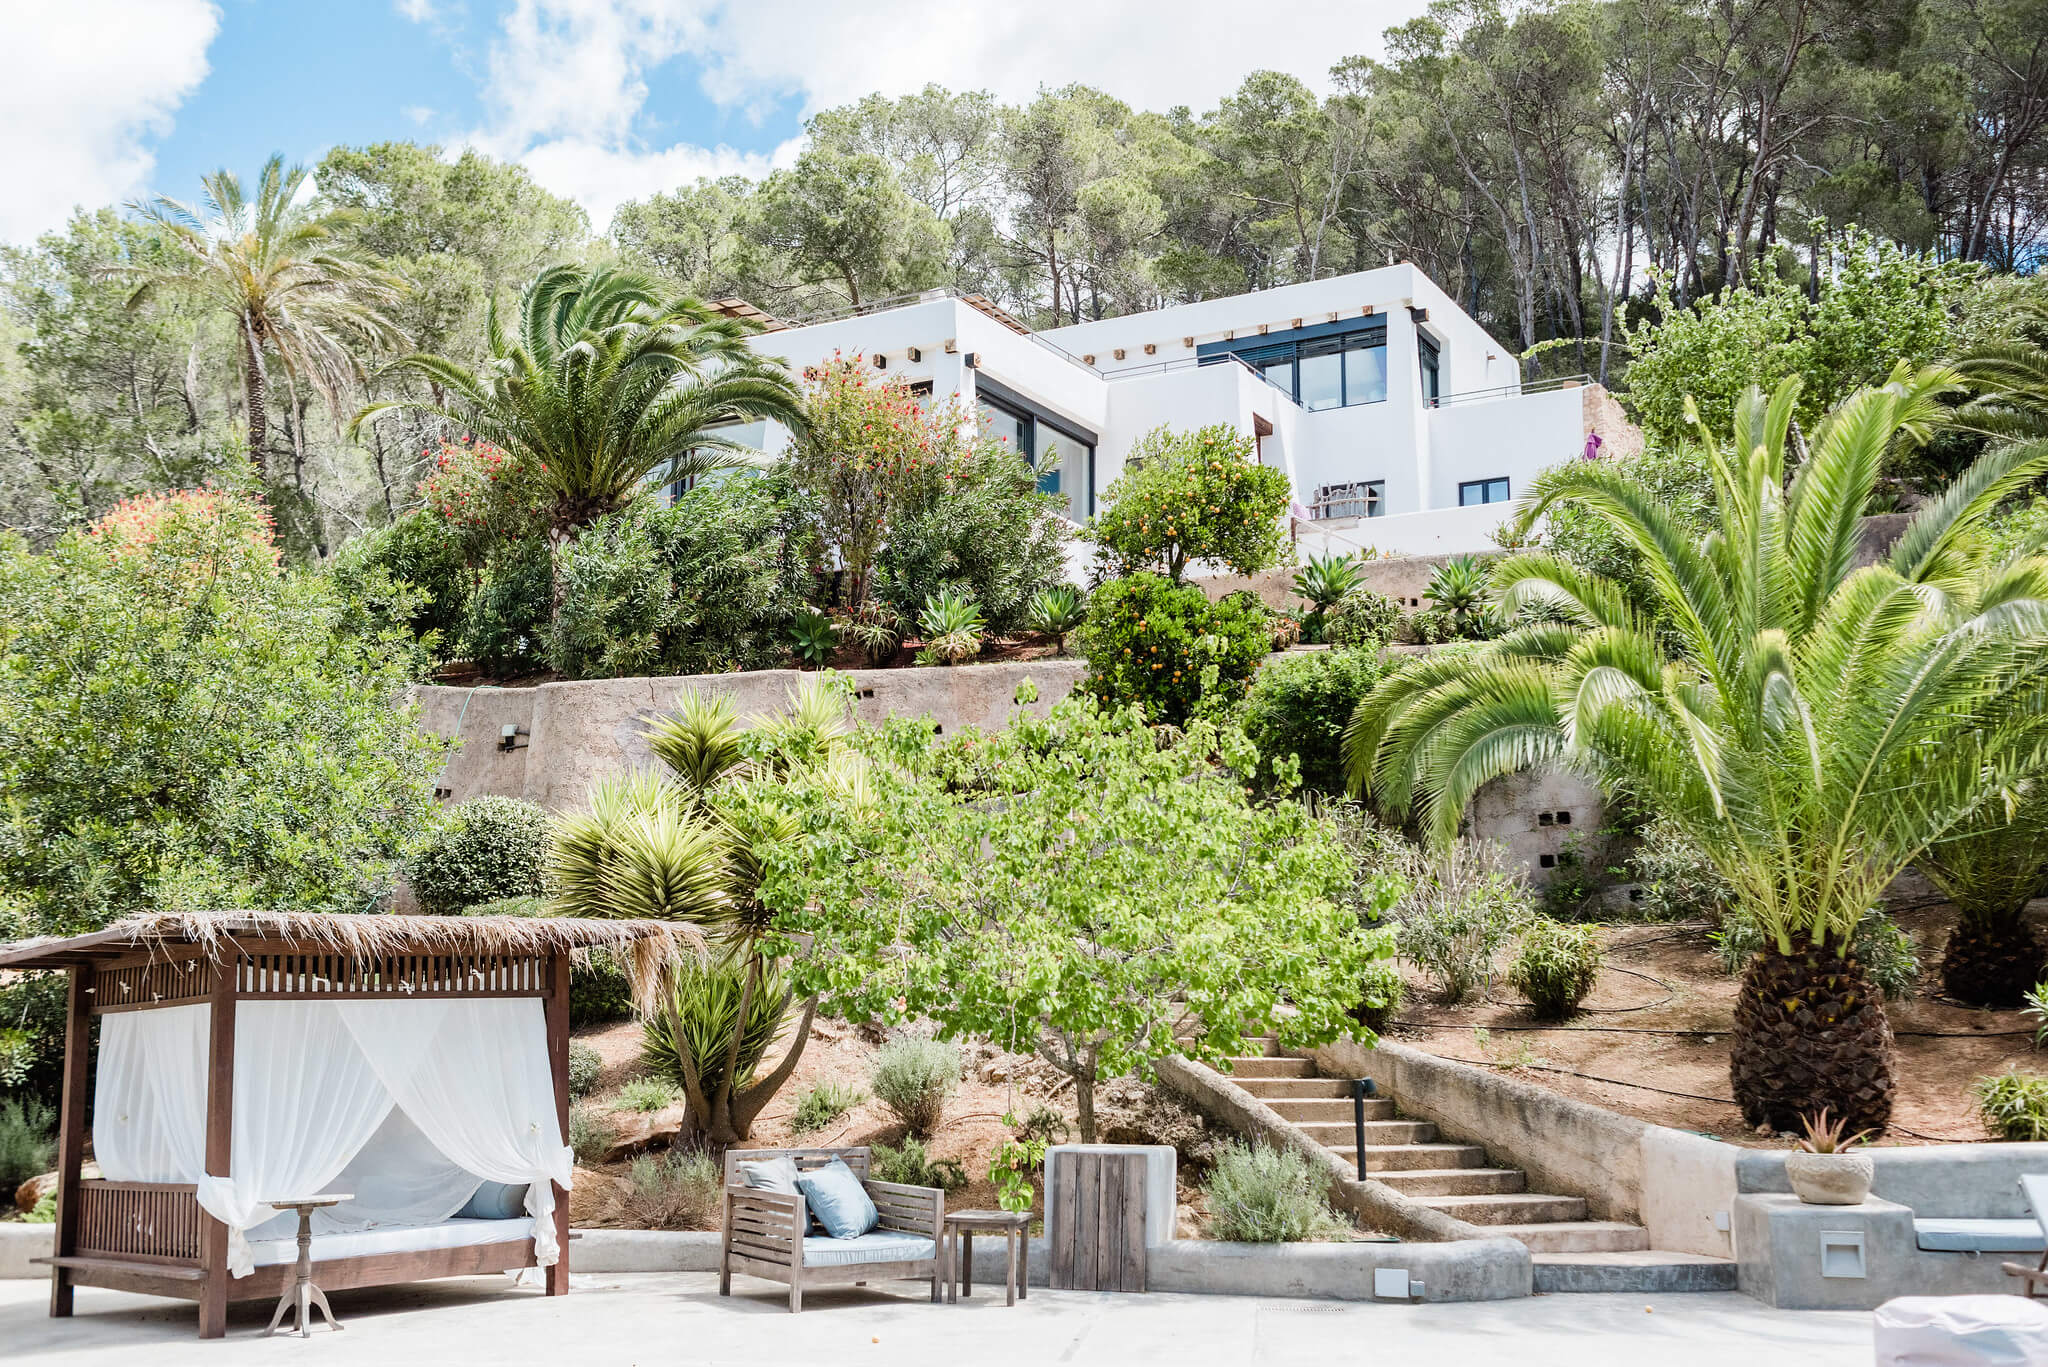 https://www.white-ibiza.com/wp-content/uploads/2020/05/white-ibiza-villas-can-iguana-exterior-from-pool.jpg